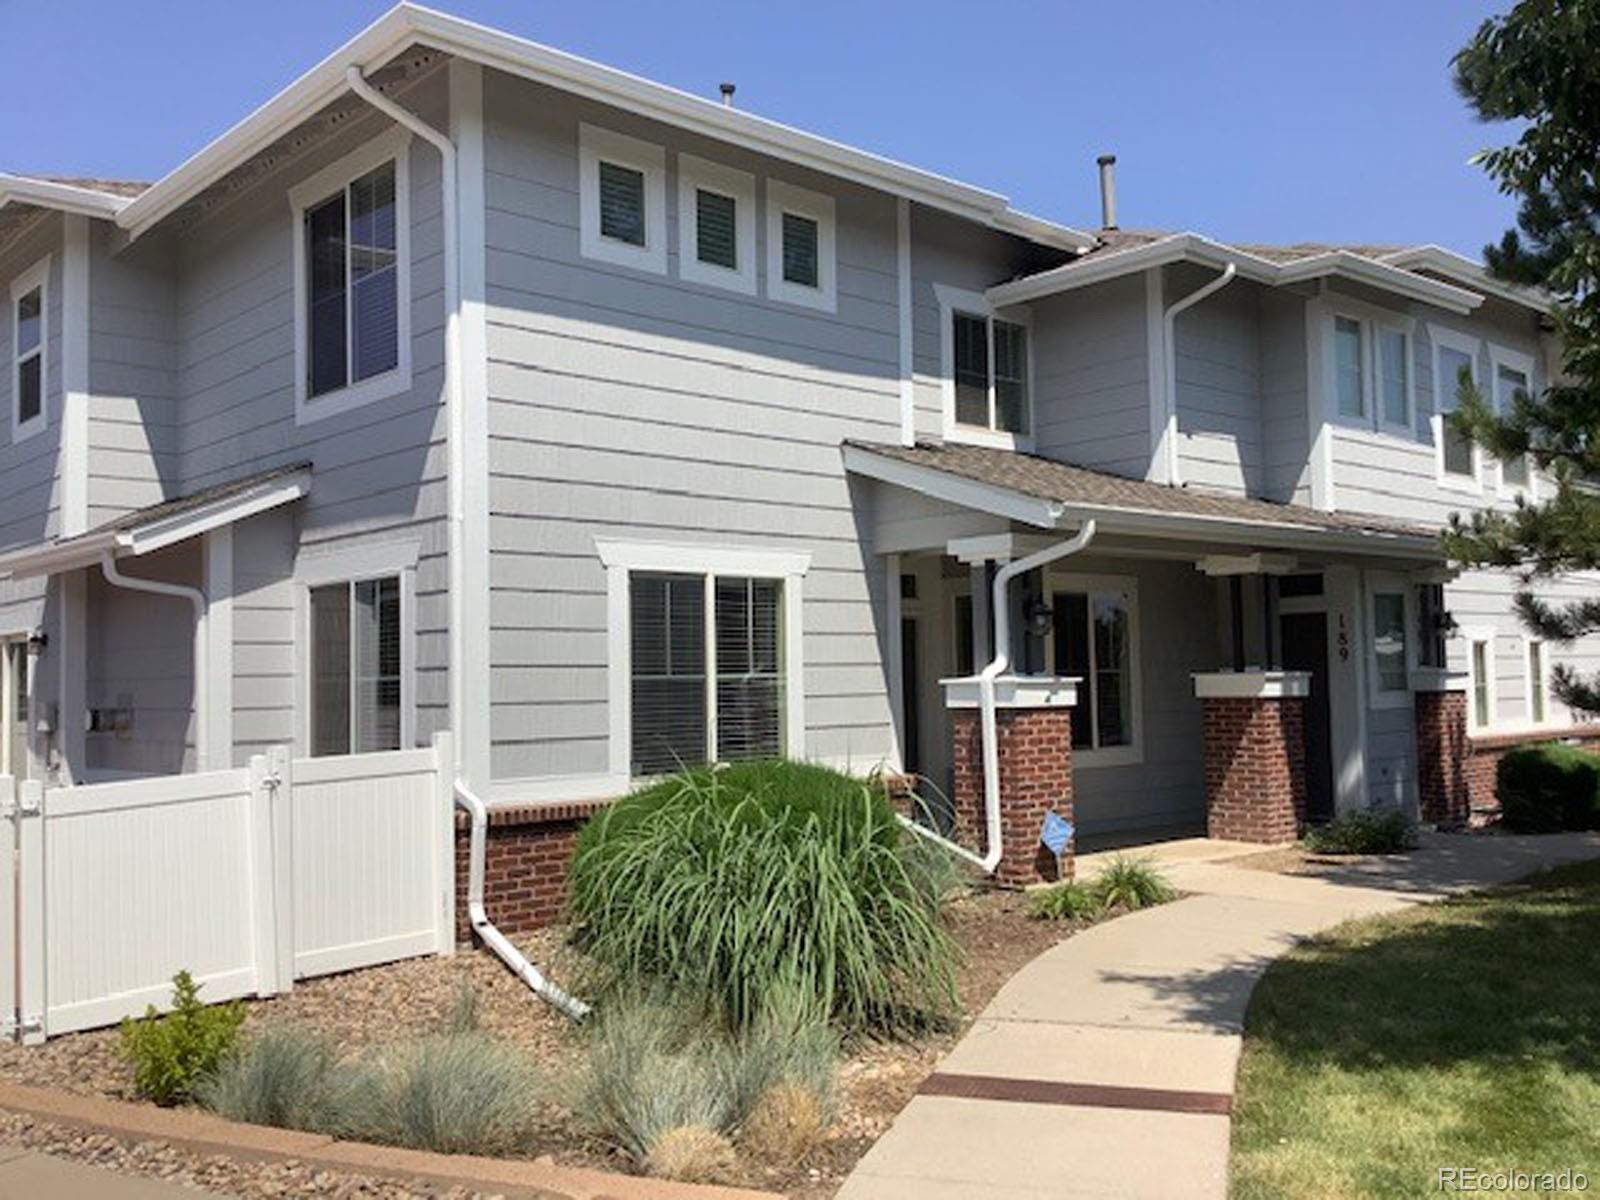 191 Whitehaven Circle, Highlands Ranch, CO 80129 - #: 5686522